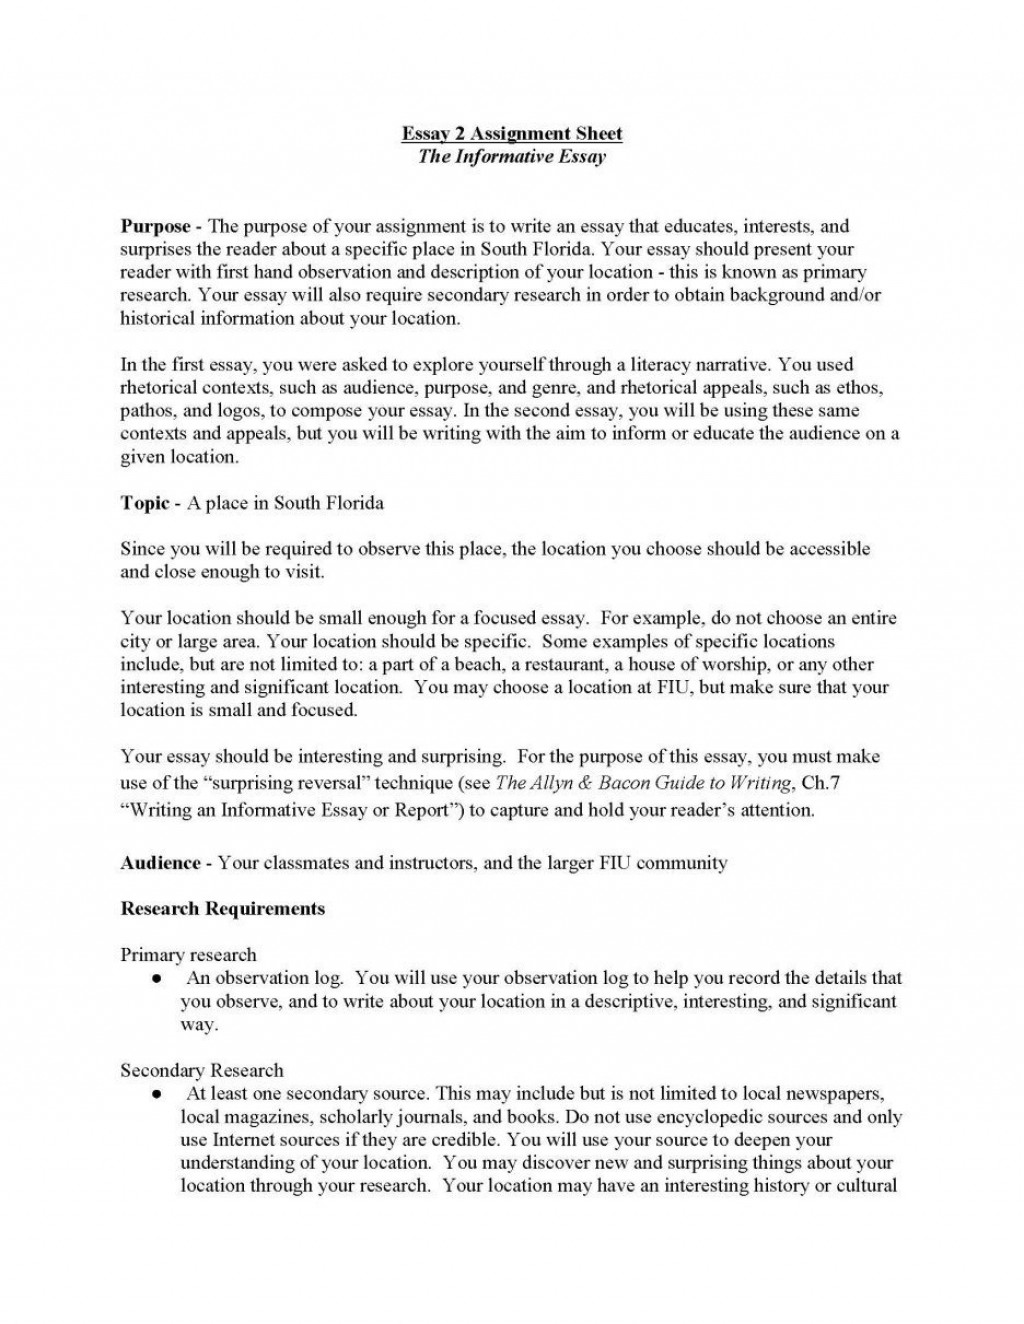 005 Definition Success Essay Outline For Pics Cover Letter Essays On The Of Extended Thesis Personal Frees 936x1211 Awesome Large